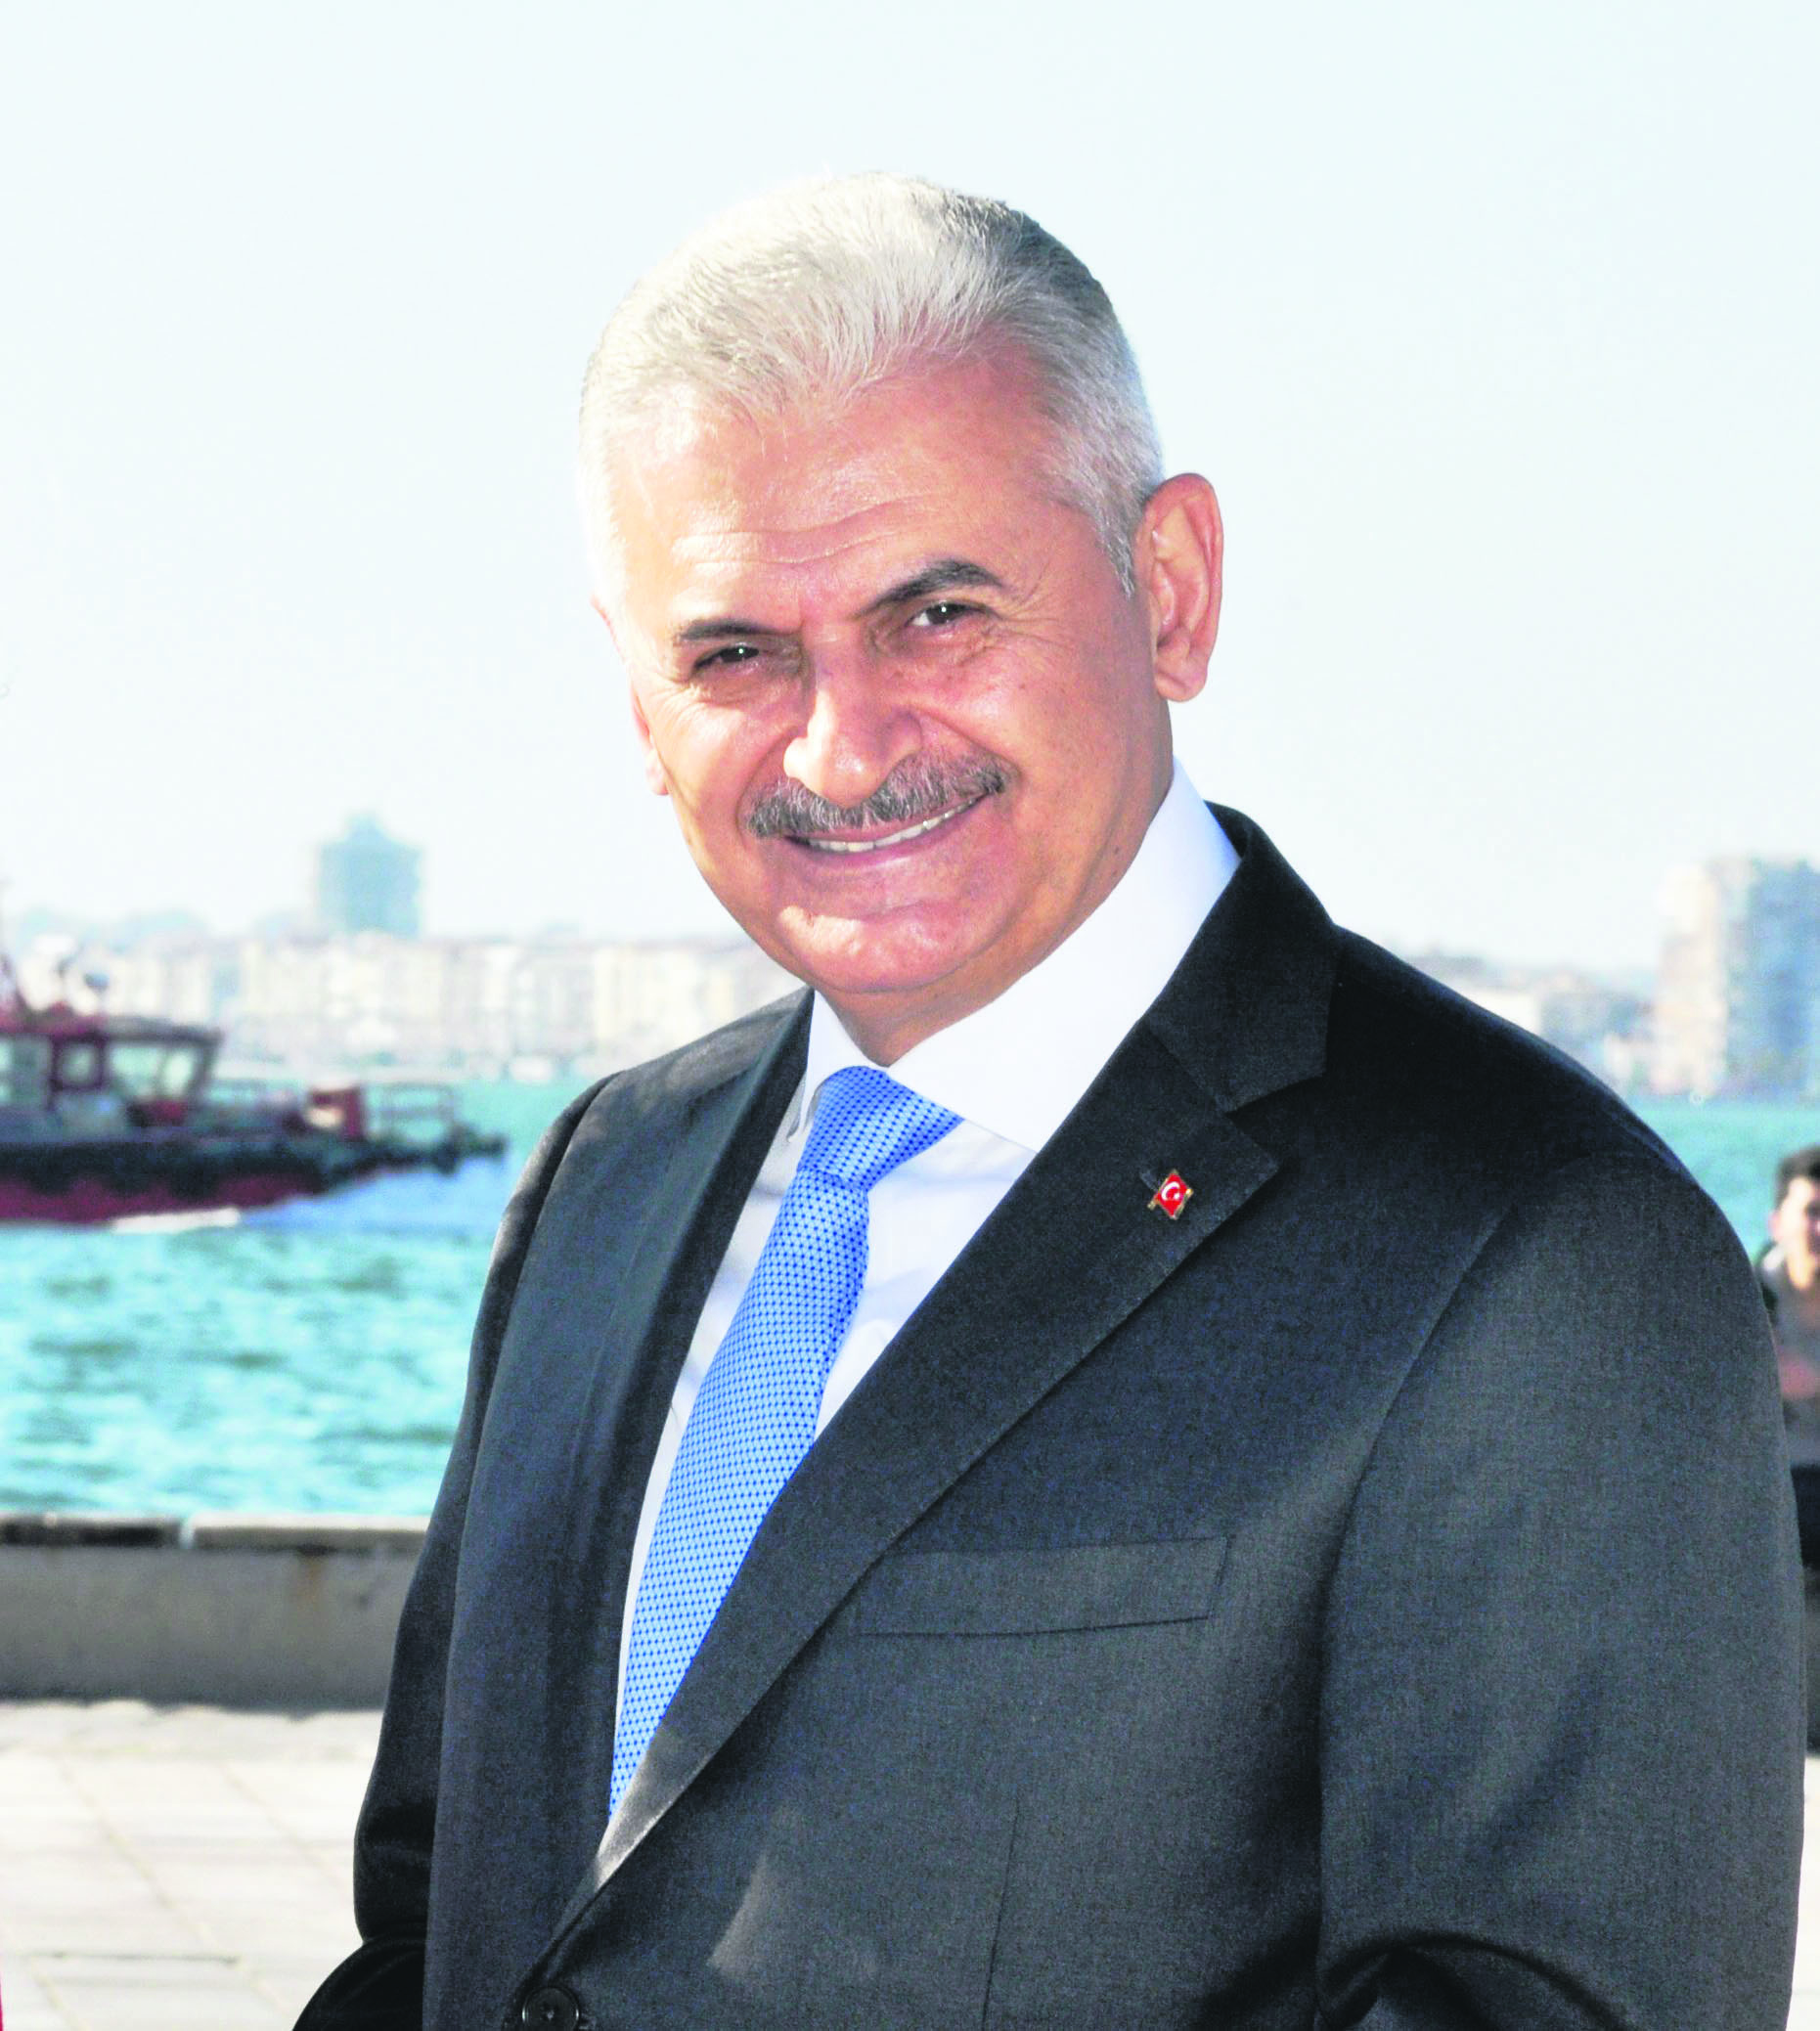 Former Transportation Minister Binali Yıldırım, who managed dozens of projects across the country, is on the AK Party list for İzmir.